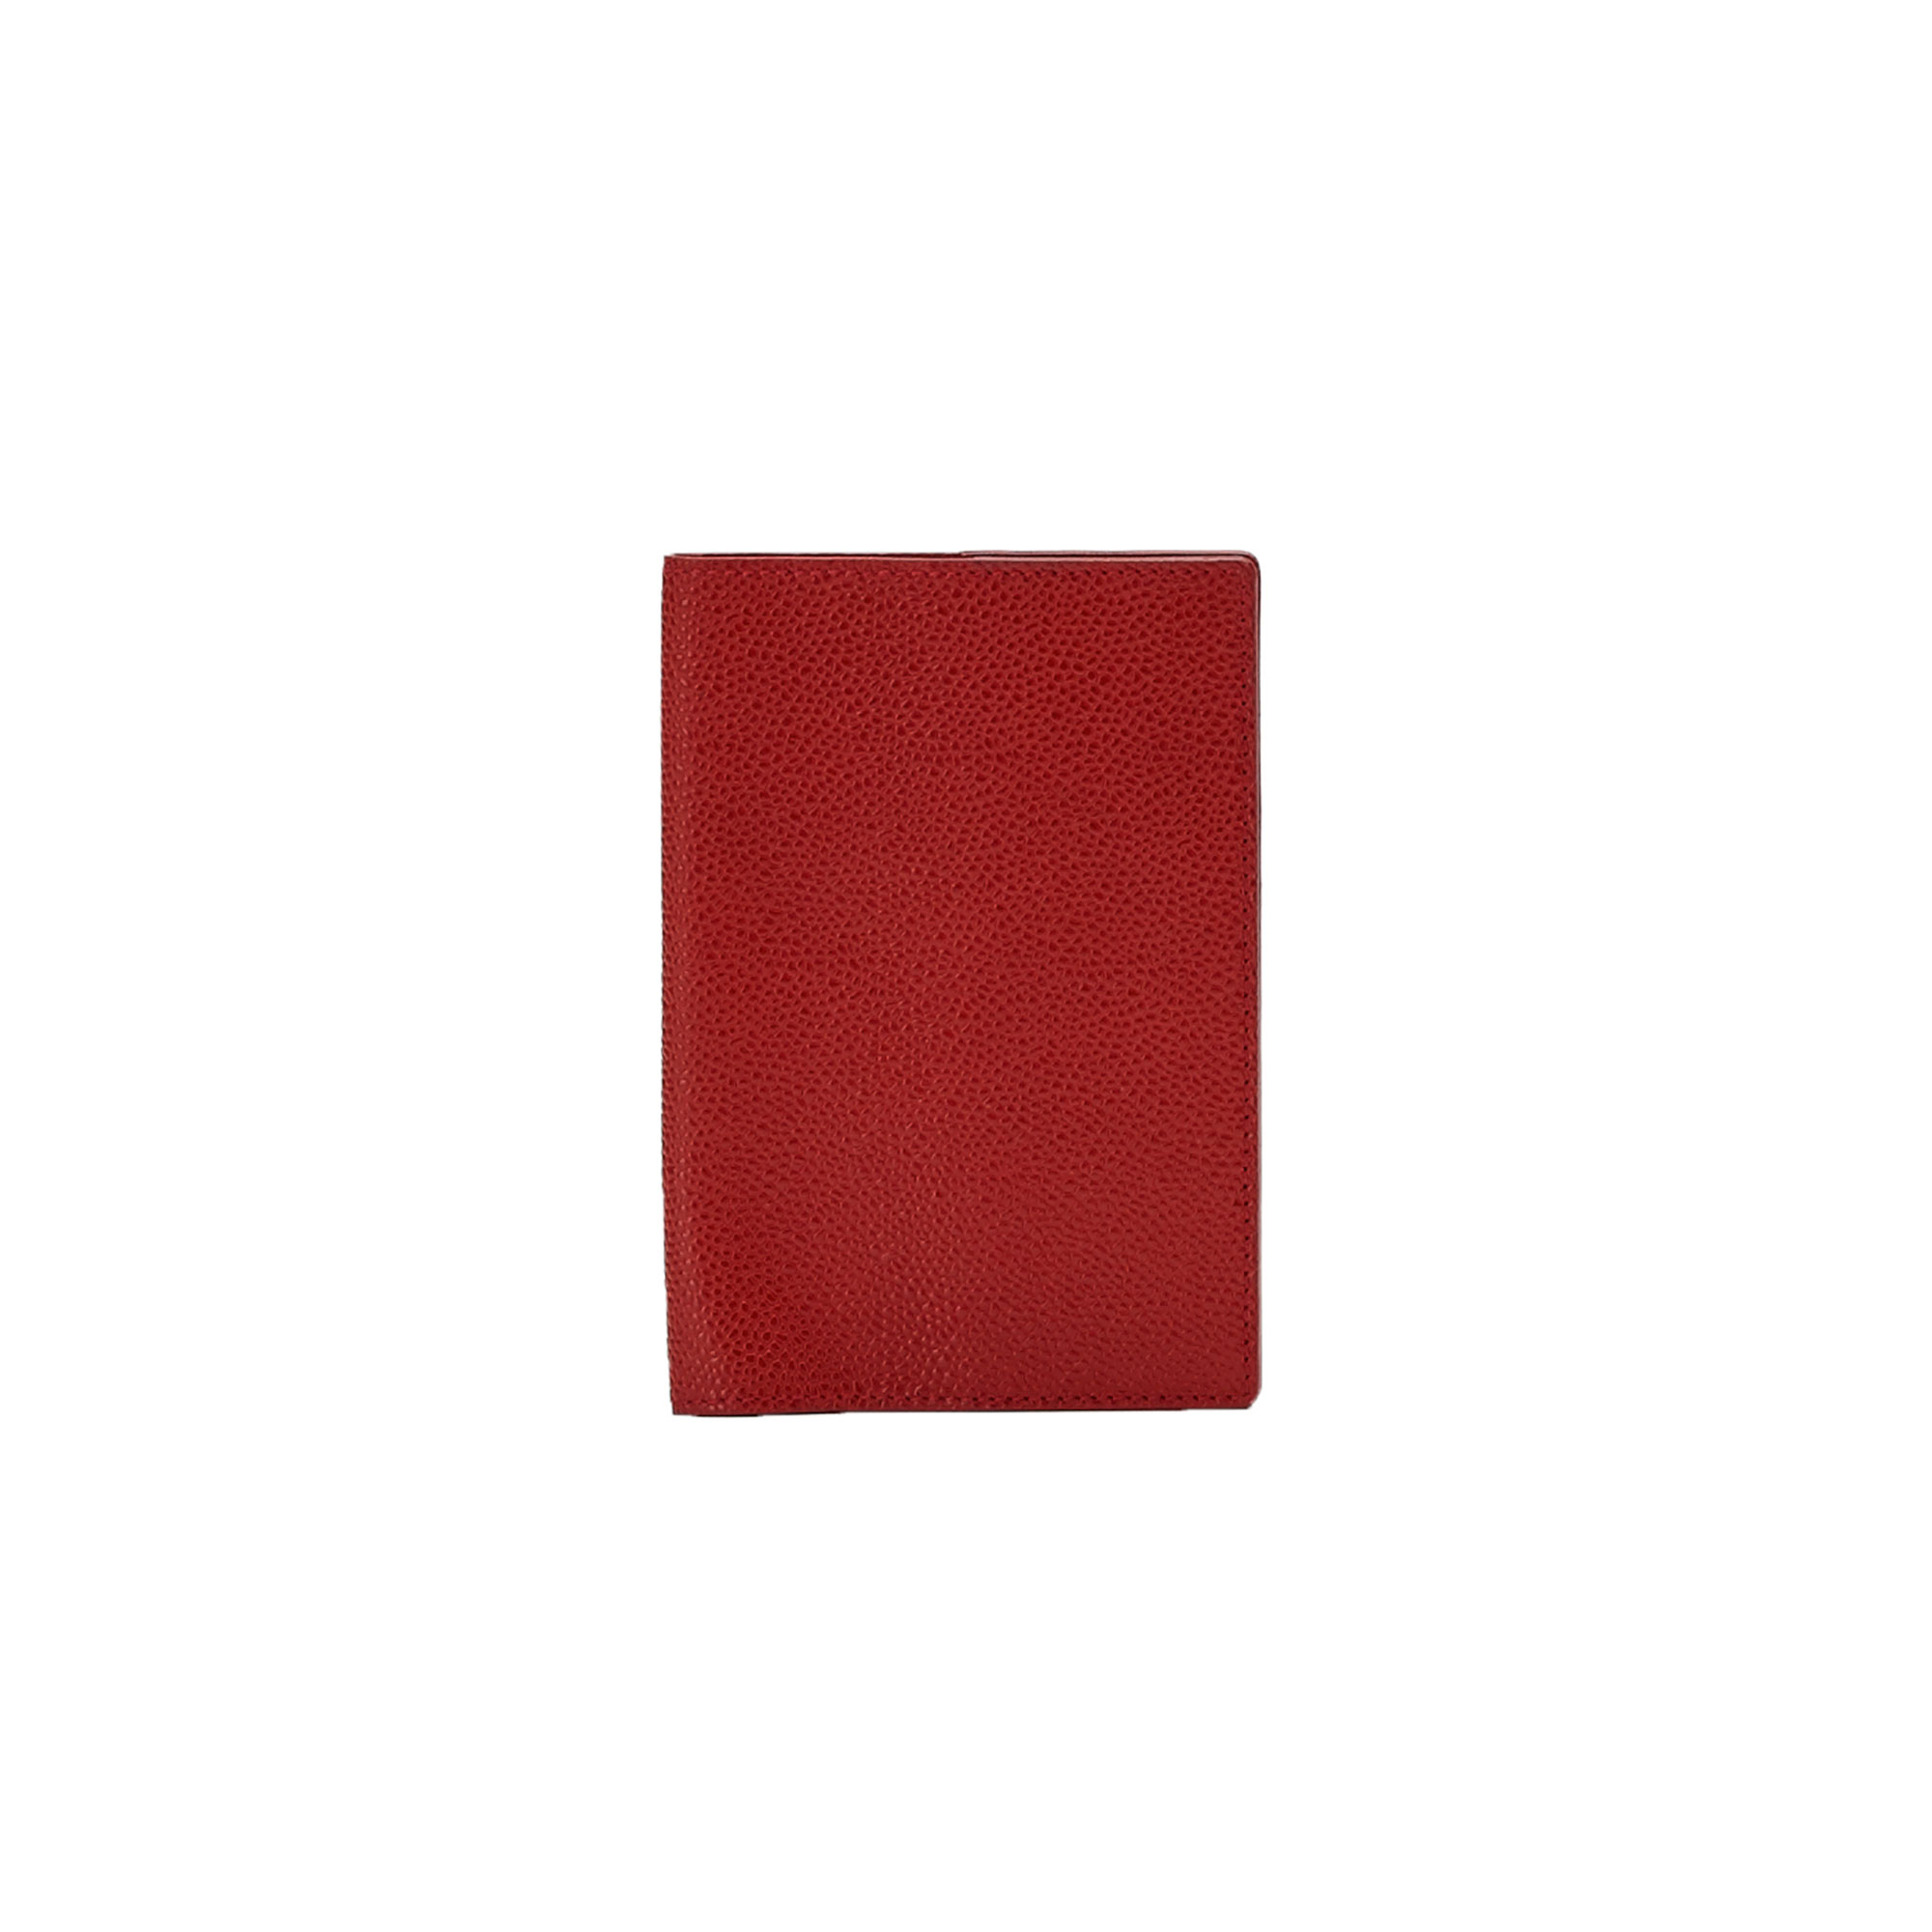 The red grain calf Passport Case by Bertoni 1949 01